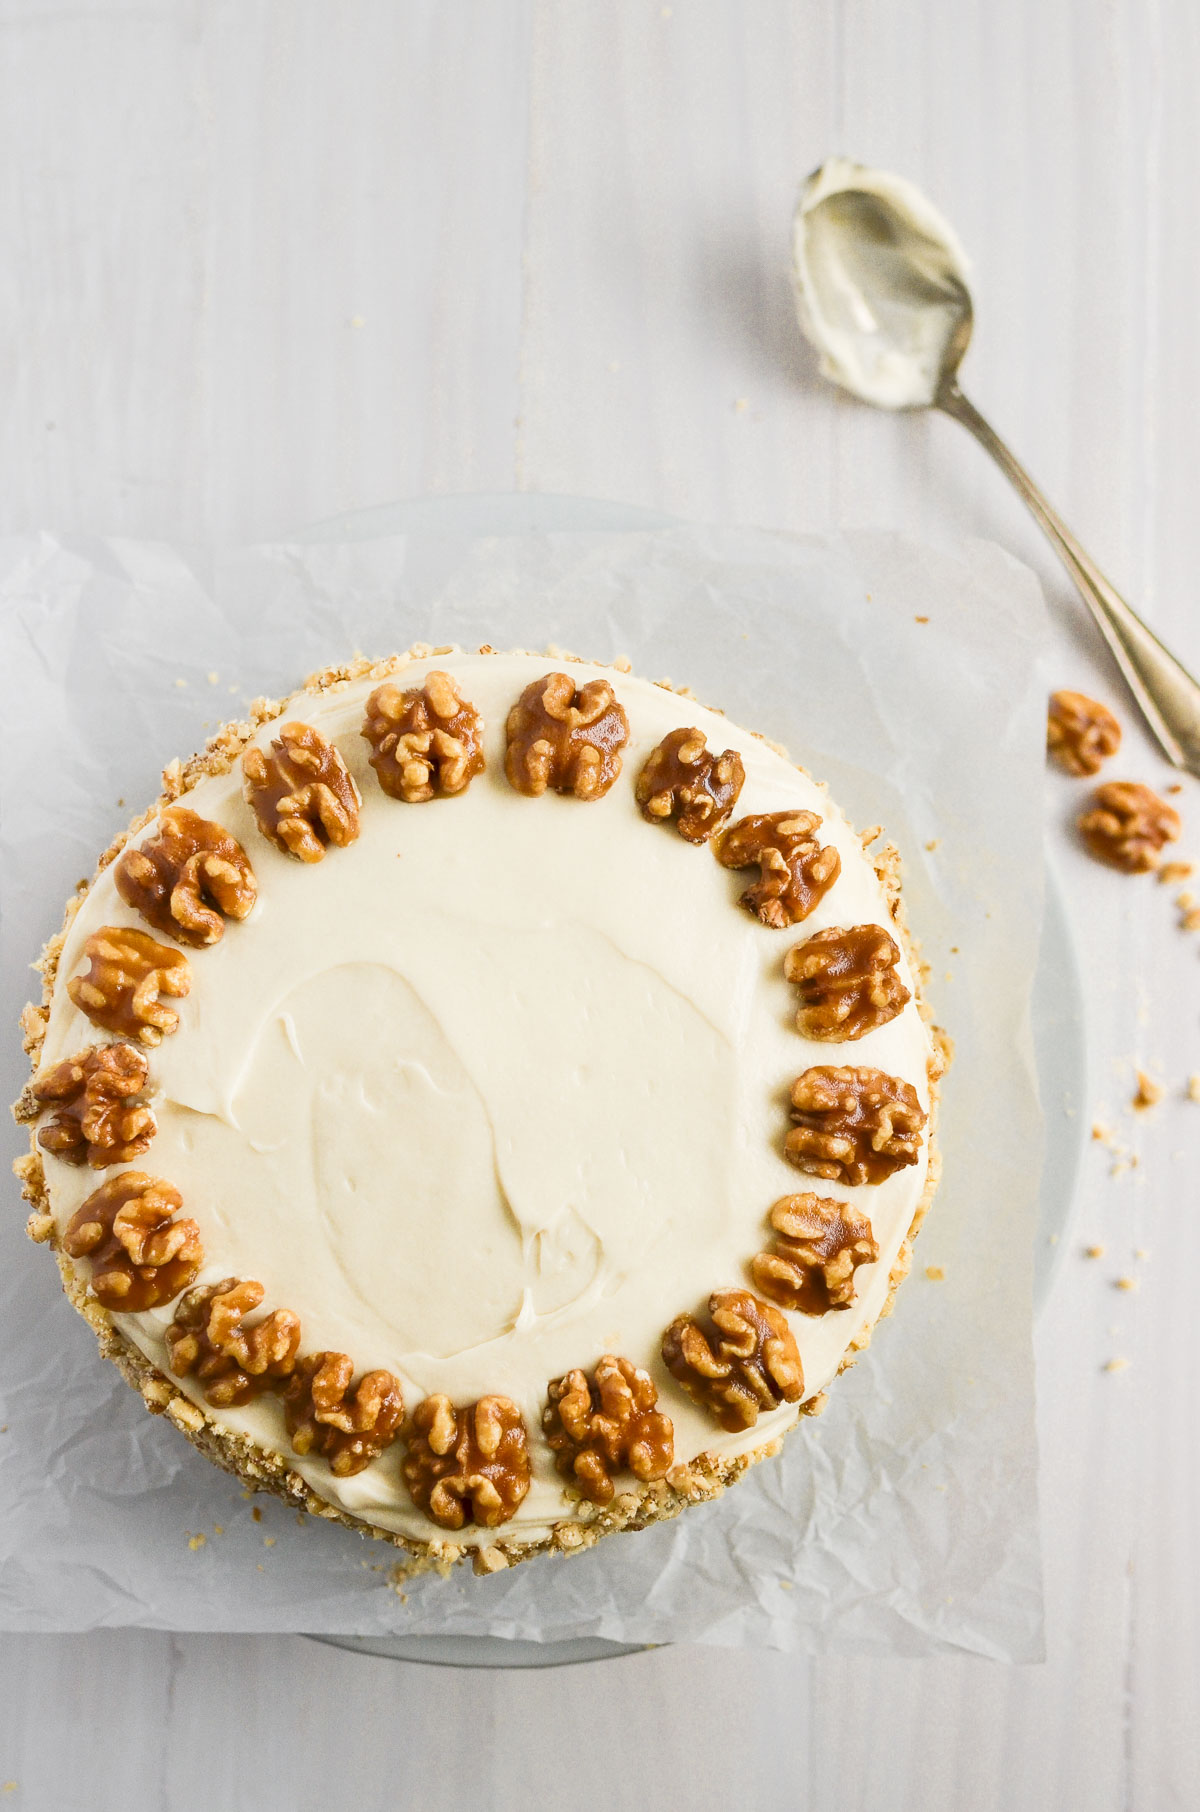 a maple walnut layer cake topped with walnut halves